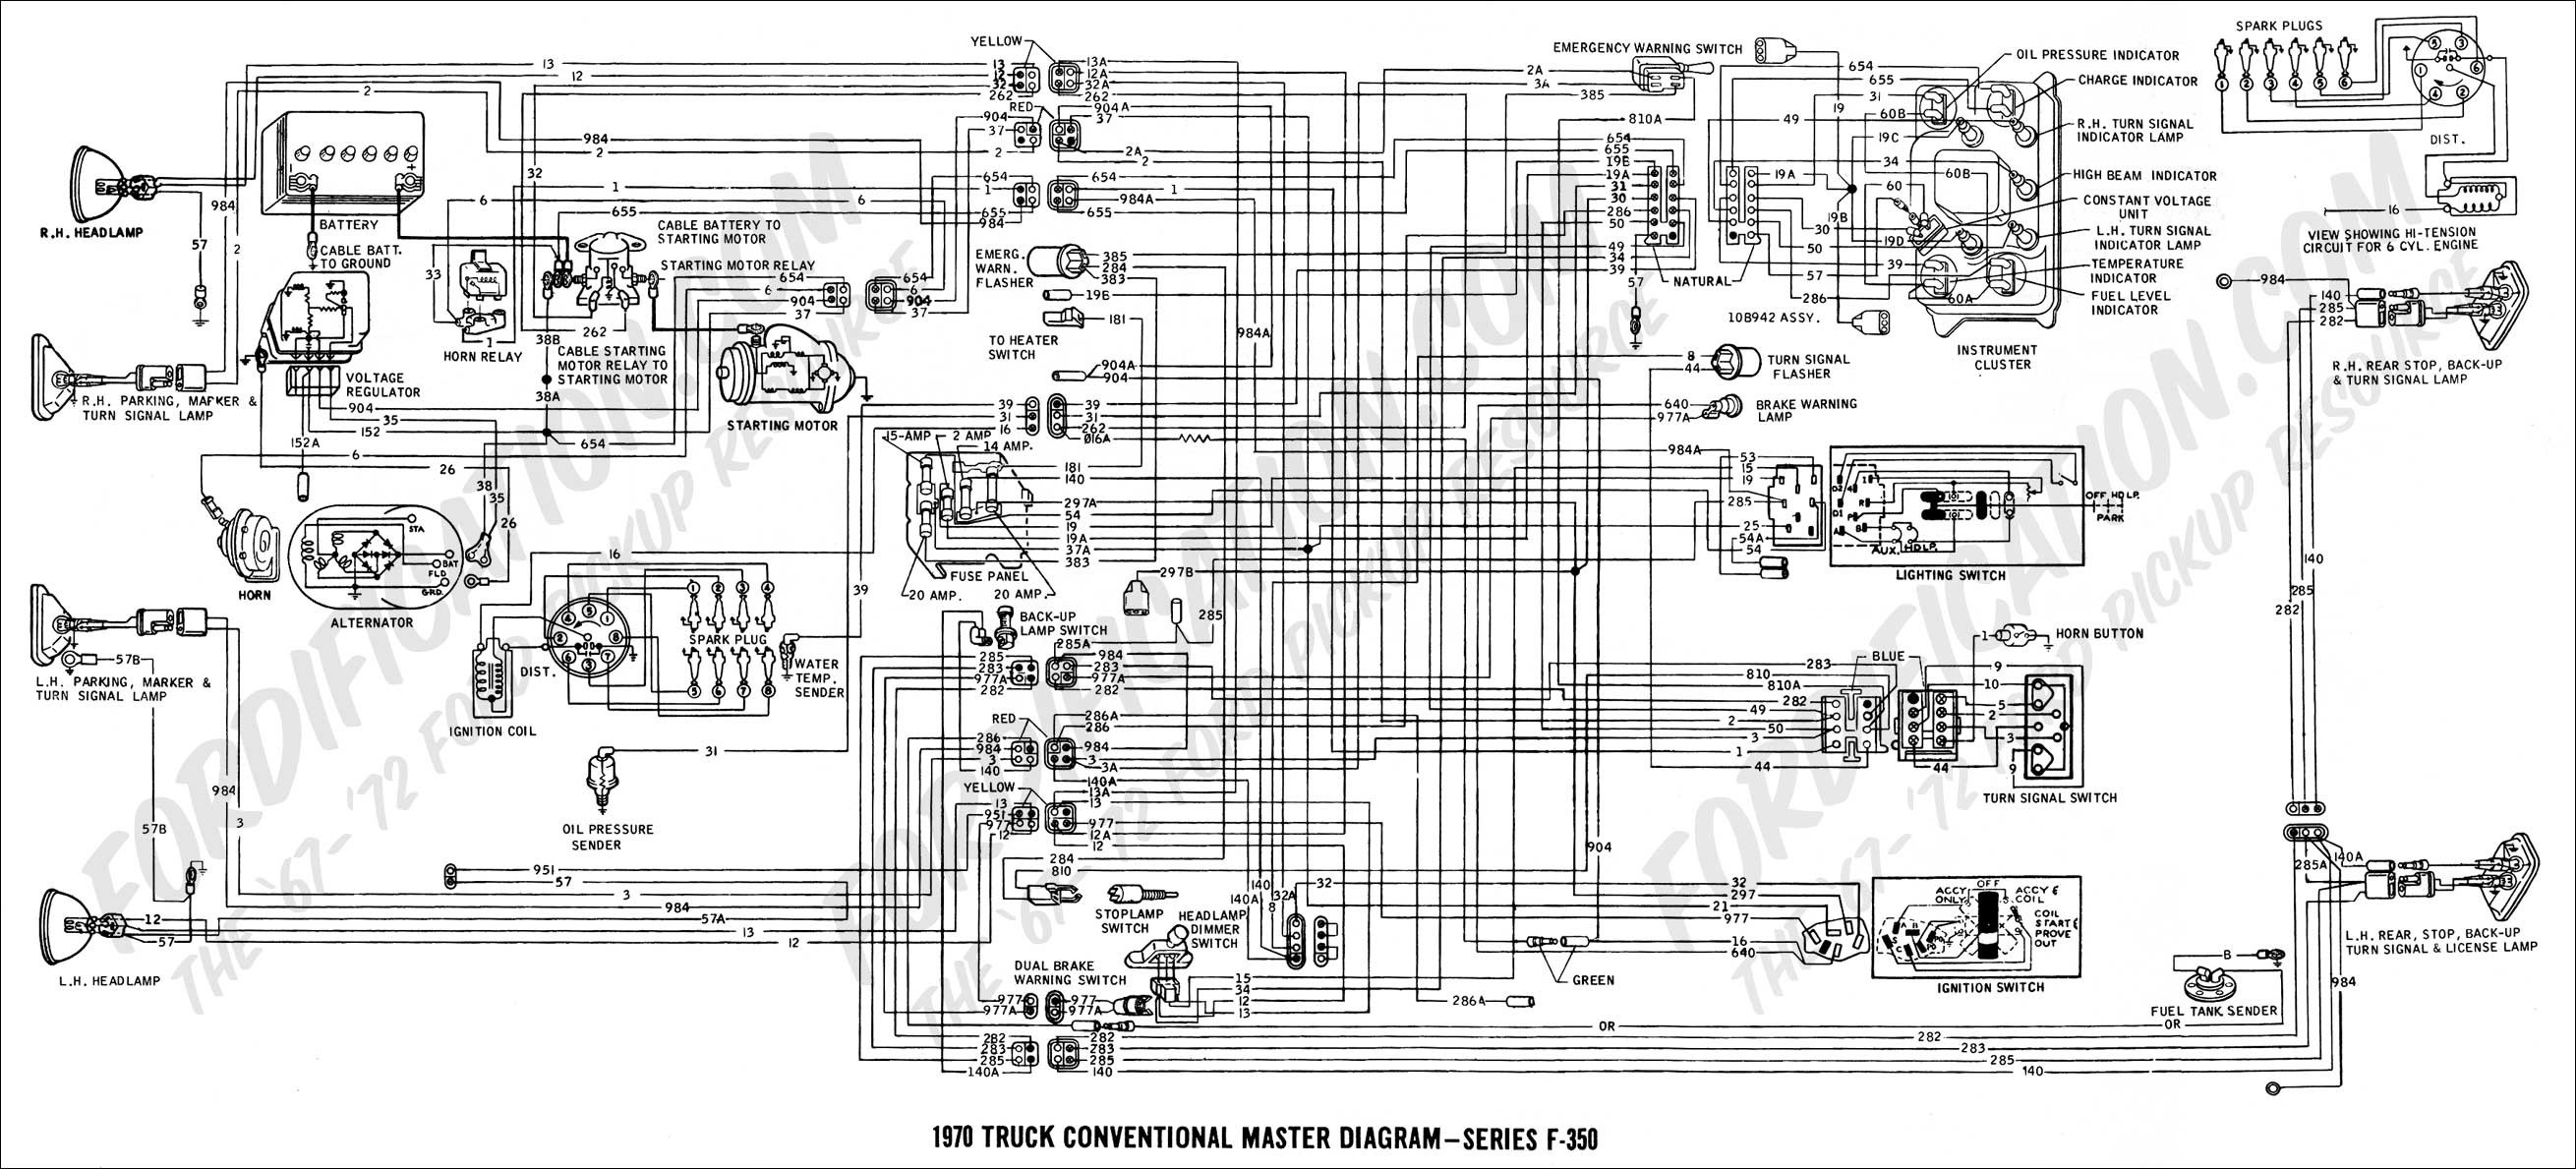 1983 ford f 350 wiring harness free download custom wiring diagram u2022 rh littlewaves co